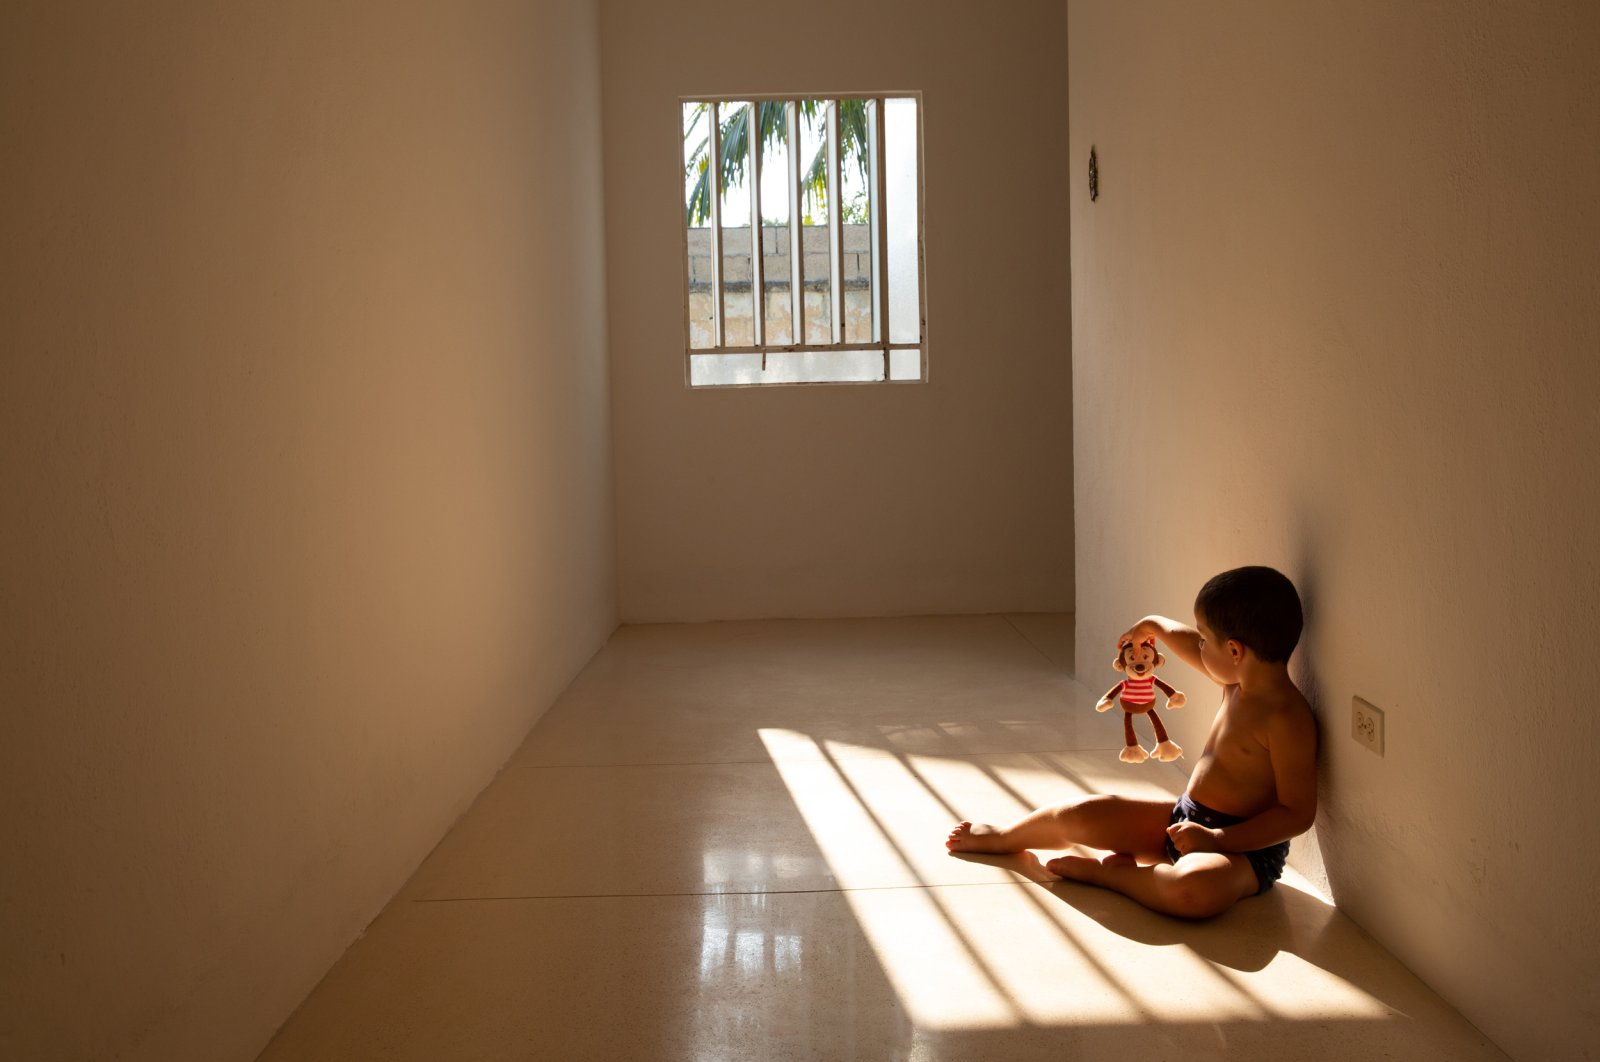 Thiago playing in the sunlight with his toy monkey on his 28th day of self-isolation during the COVID-19 pandemic at a temporary home in Merida, Yucatan, Mexico on April 11, 2020. (Sipa USA Photo via Reuters)